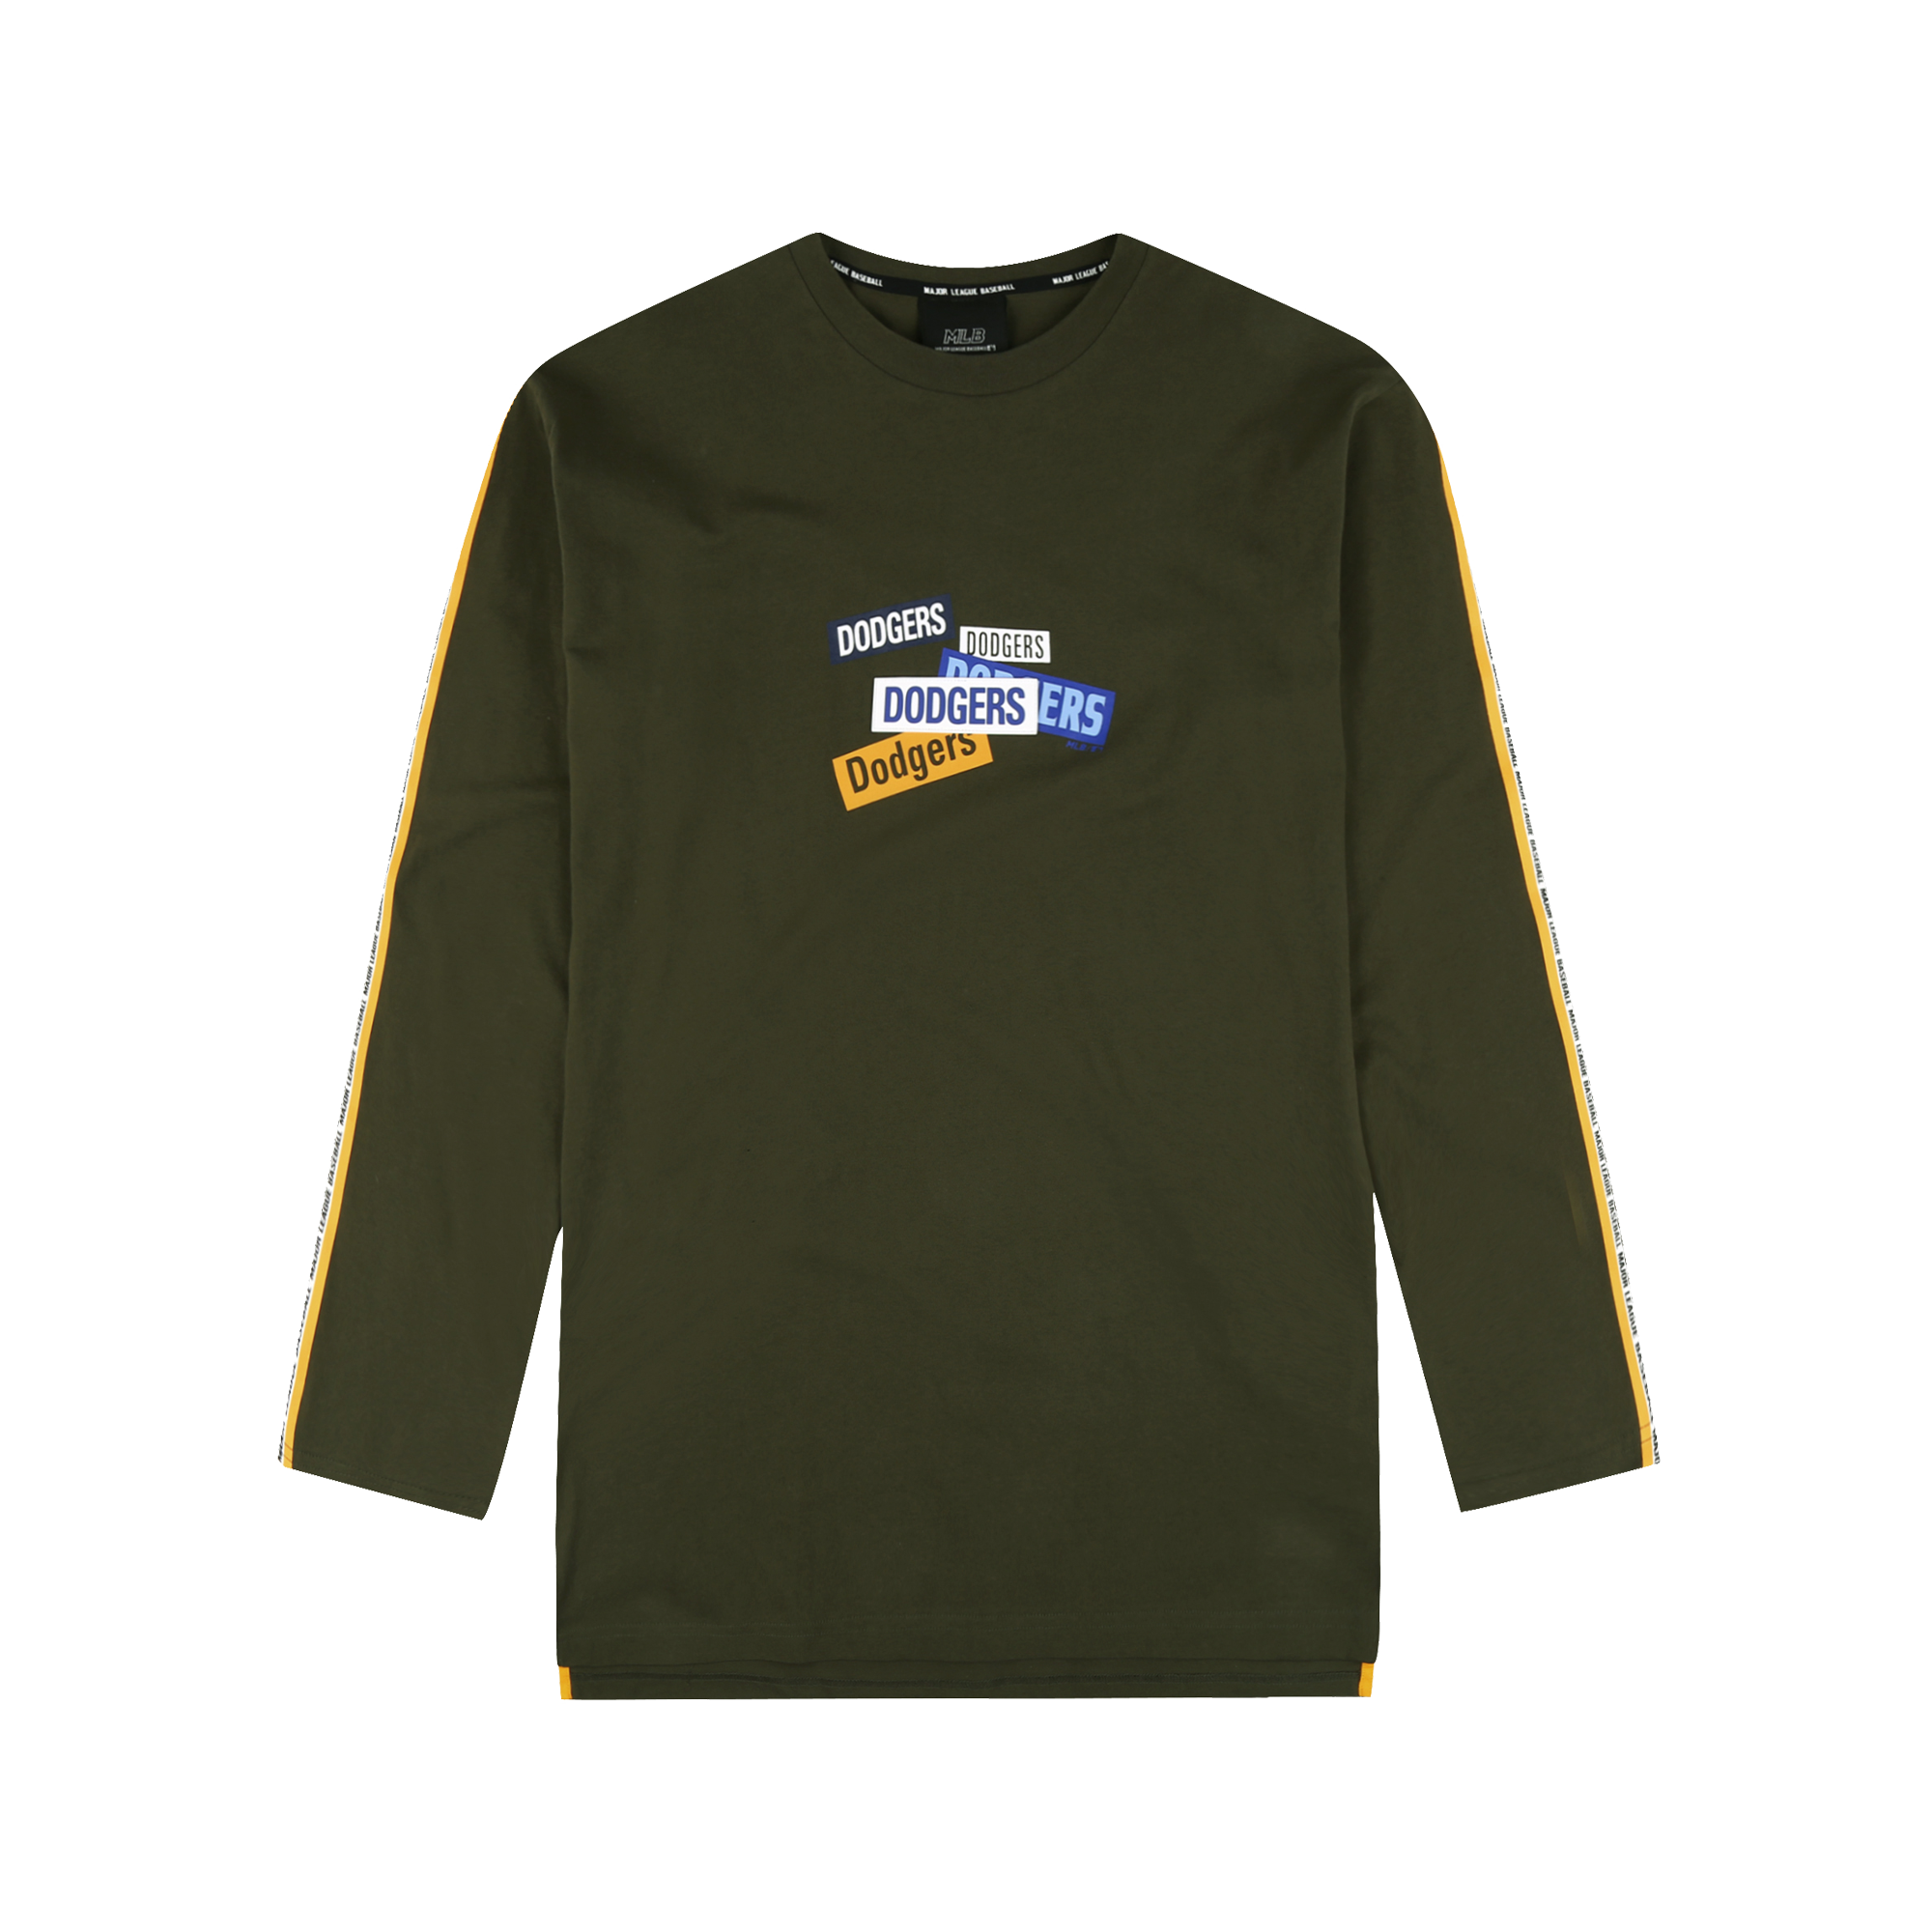 LA DODGERS STICKY NOTE LONG SLEEVED T-SHIRT